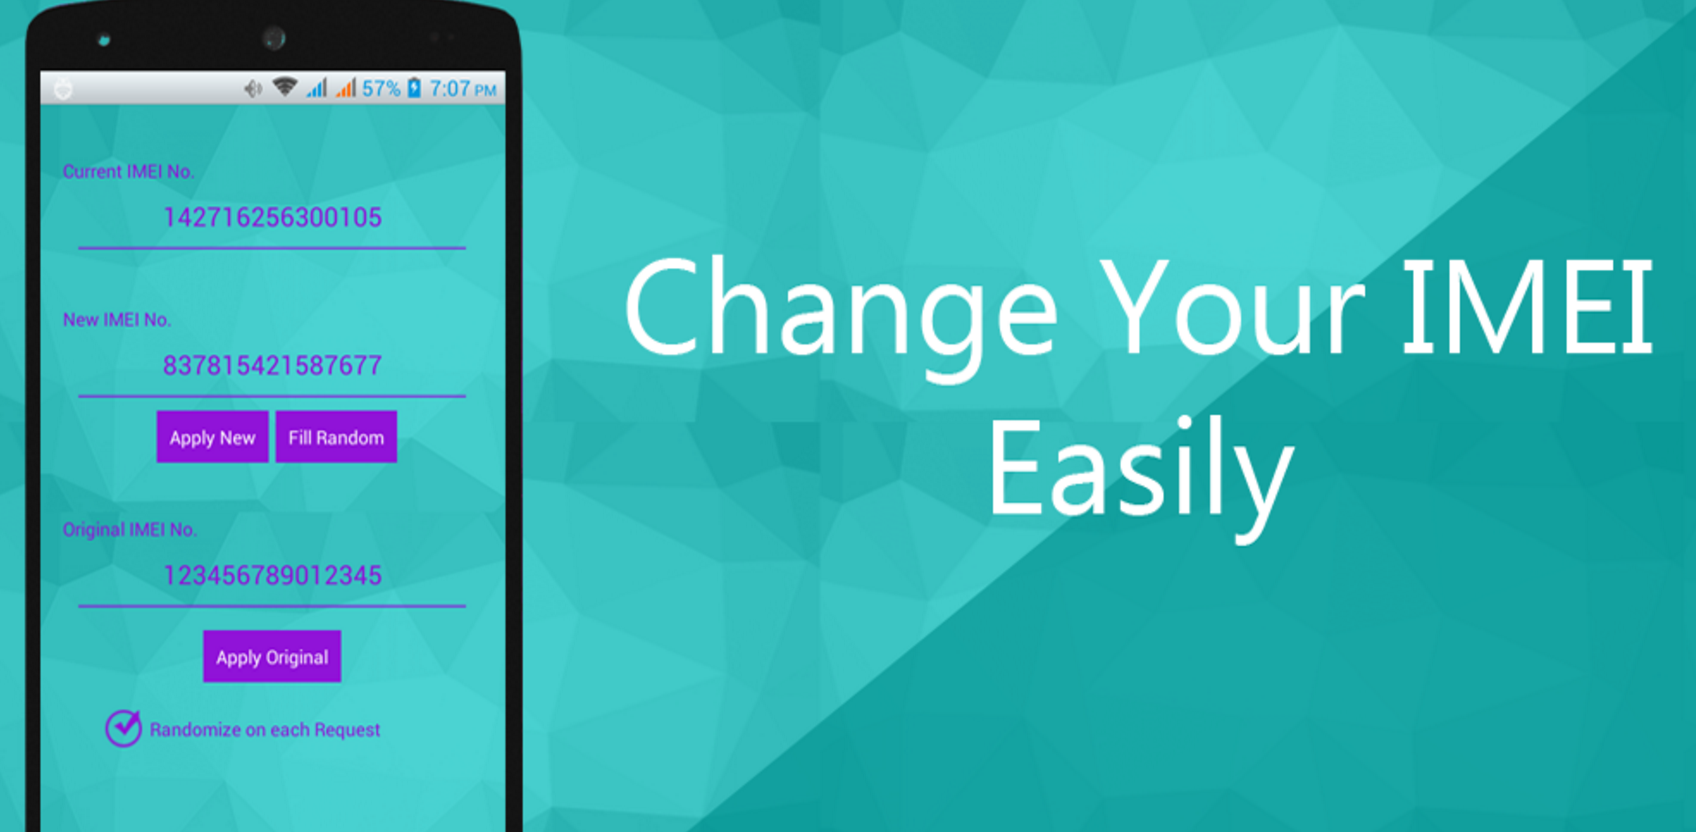 How-to-Change-IMEI-Number